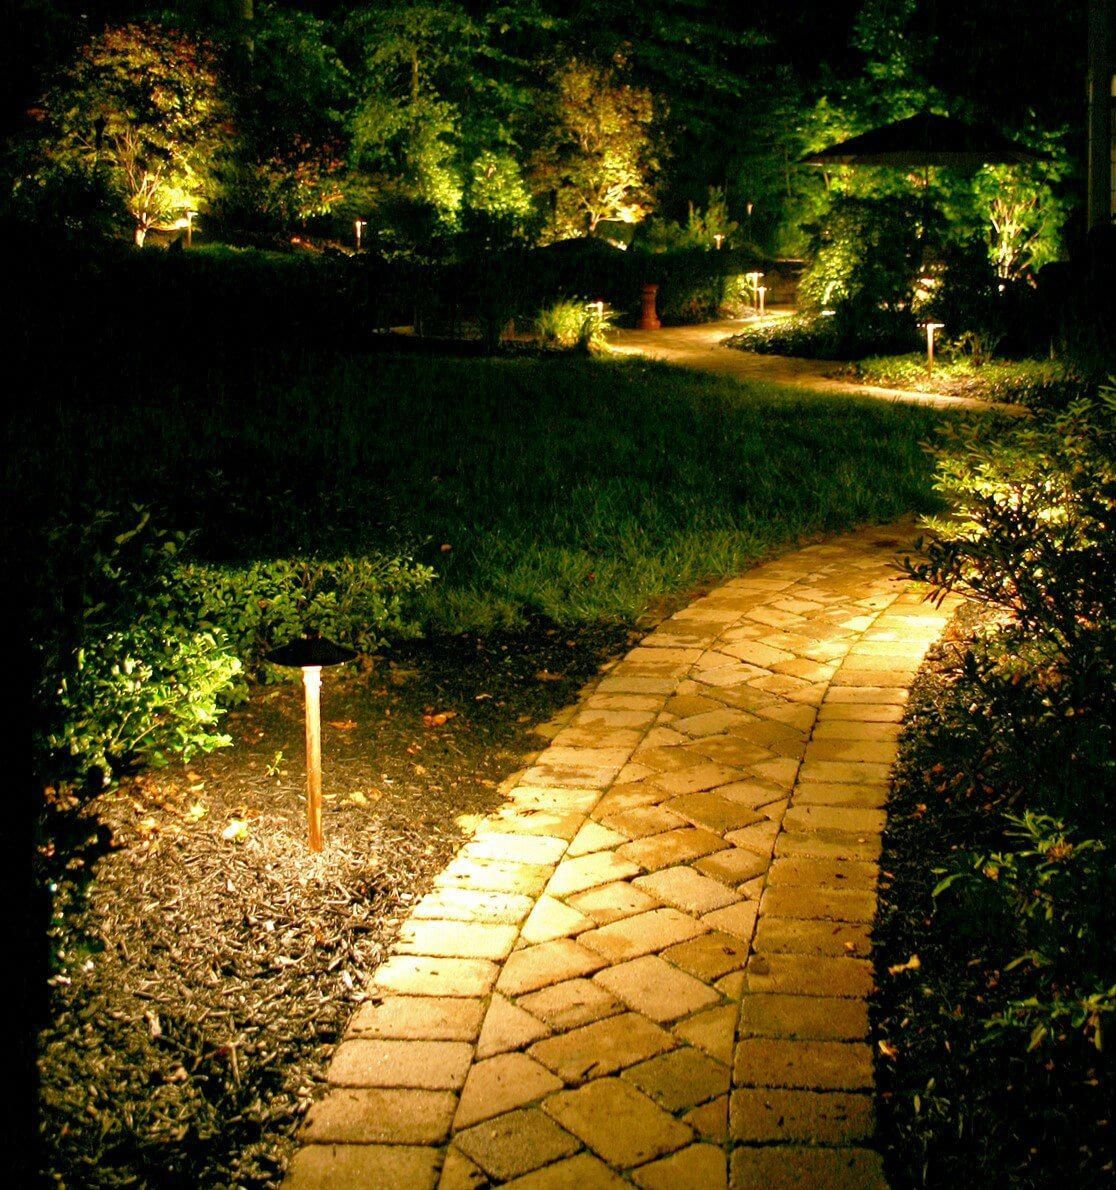 The 10 Best Outdoor Lighting Ideas For Your Garden Or Your Porch Backyard 3246755386 Ou Outdoor Landscape Lighting Outdoor Path Lighting Outdoor Landscaping